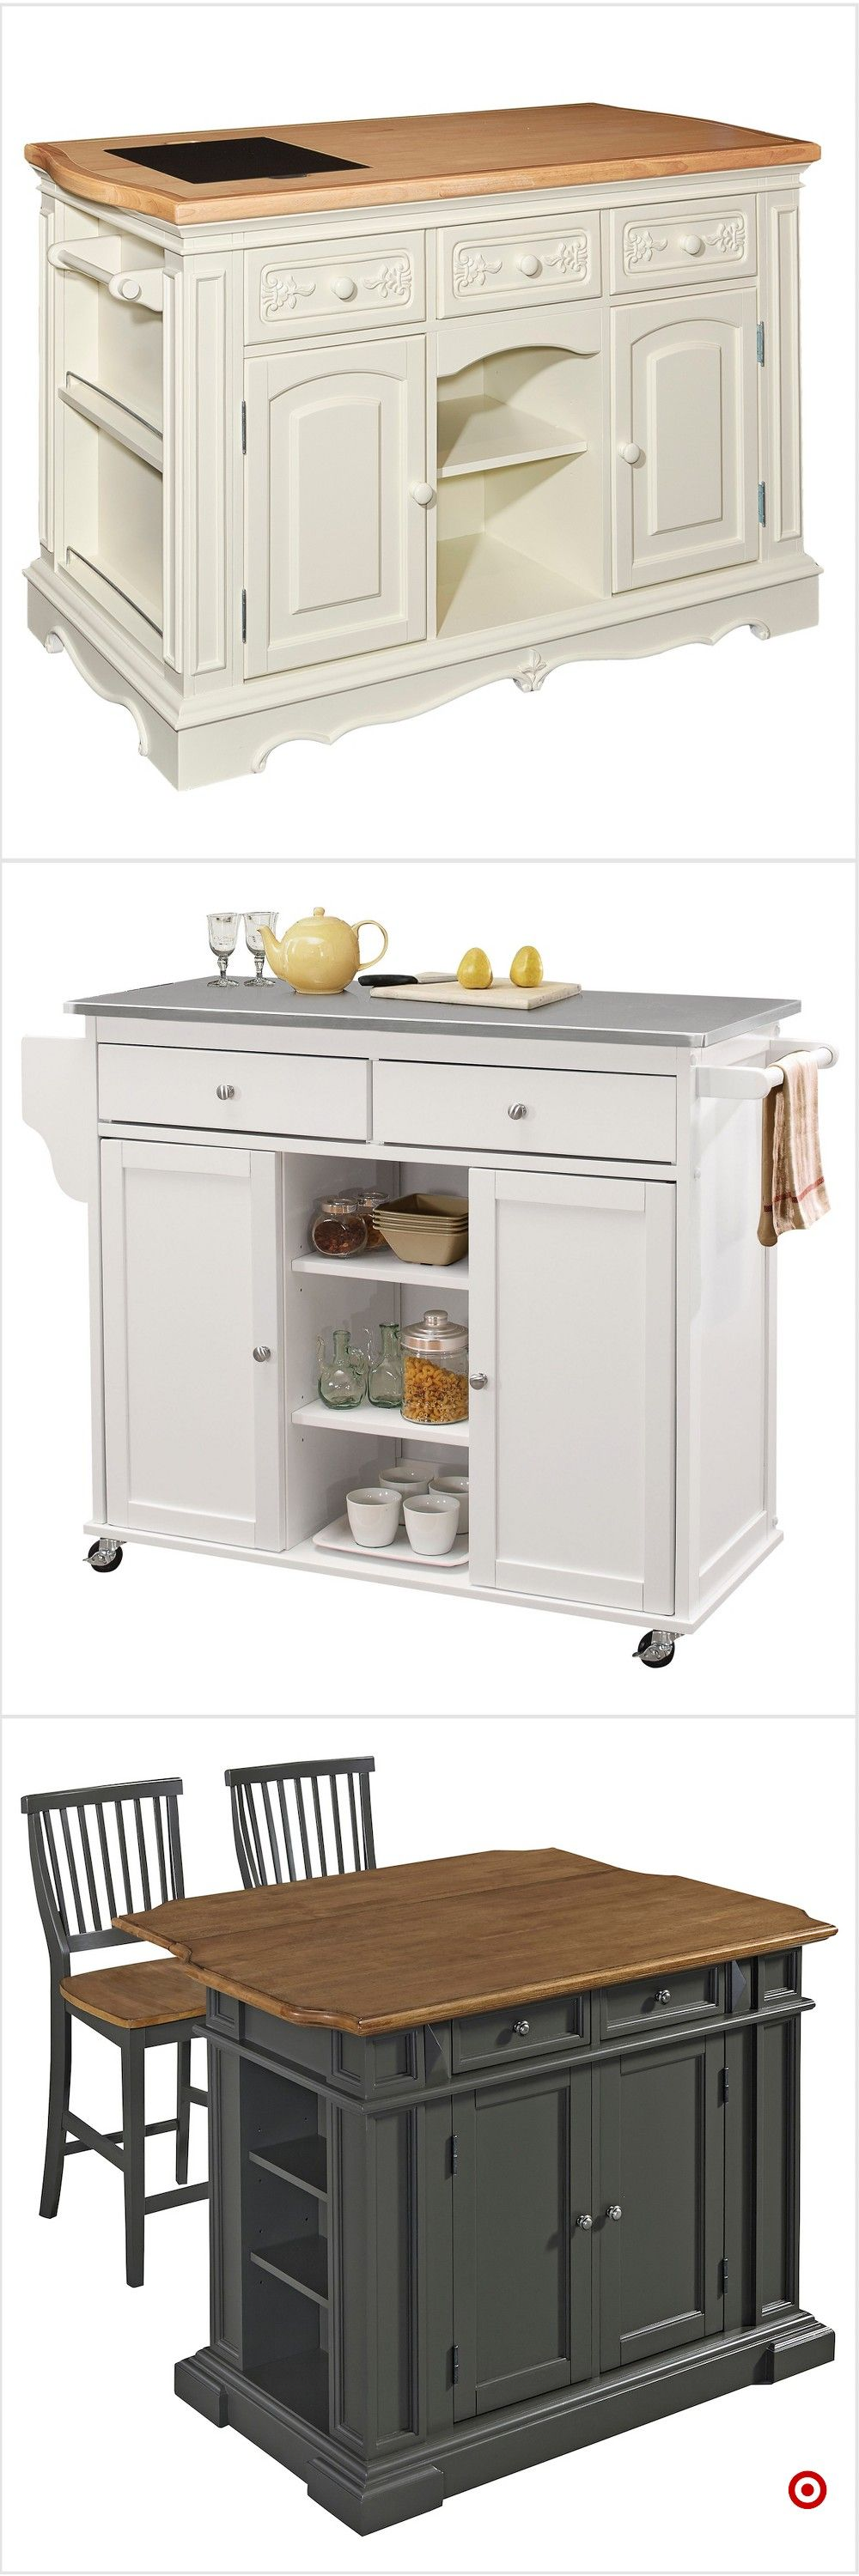 Kitchen Island Prices Tops Shop Target For You Will Love At Great Low Free Shipping On Orders Of 35 Or Same Day Pick Up In Store